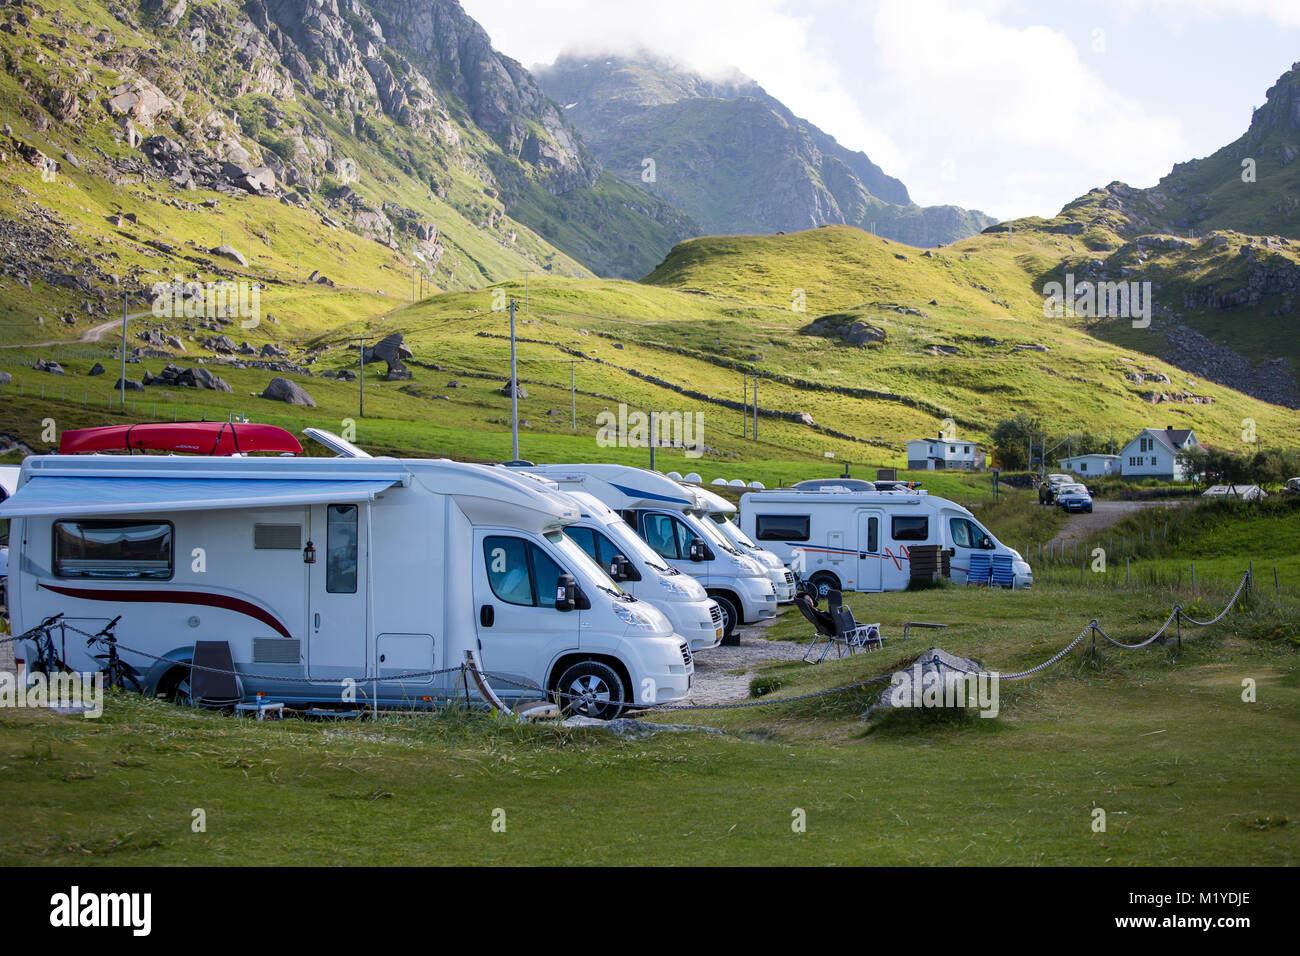 A number of RV:s or motorhomes are parking overnight at the parking lot at Haukland Beach, Lofoten, Norway. - Stock Image